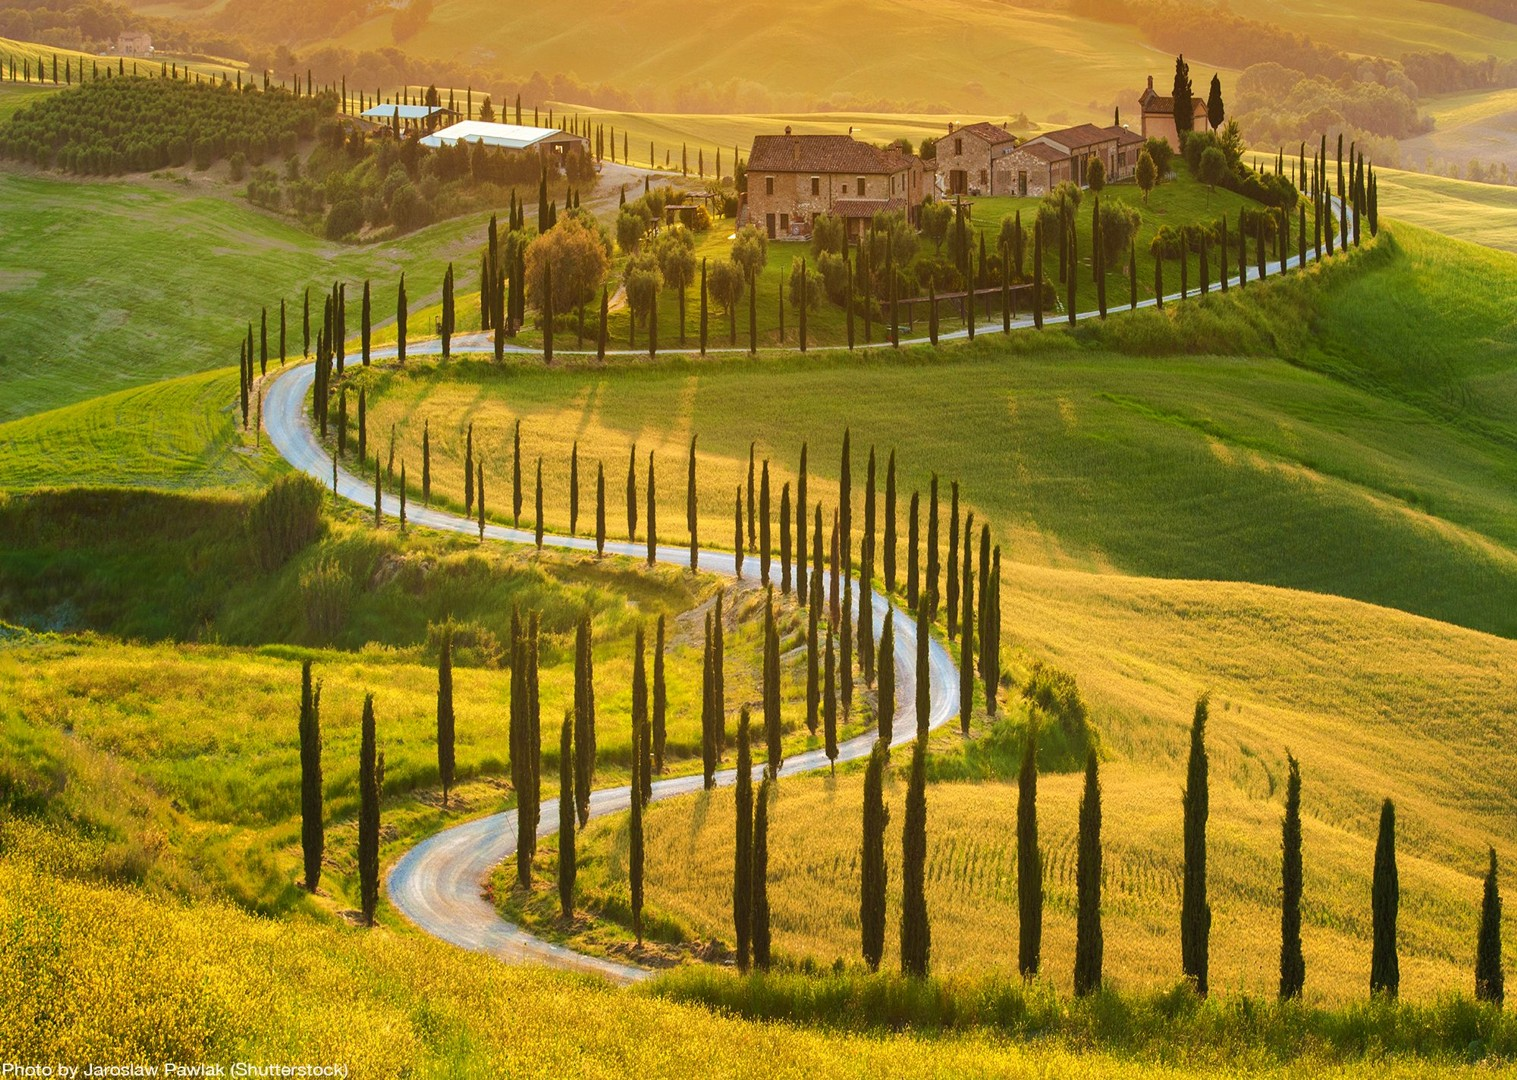 cypress-snakes-tuscany-leisure-bike-tour-self-guided.jpg - Italy - Tuscany - Pisa to Florence - Self-Guided Leisure Cycling Holiday - Leisure Cycling